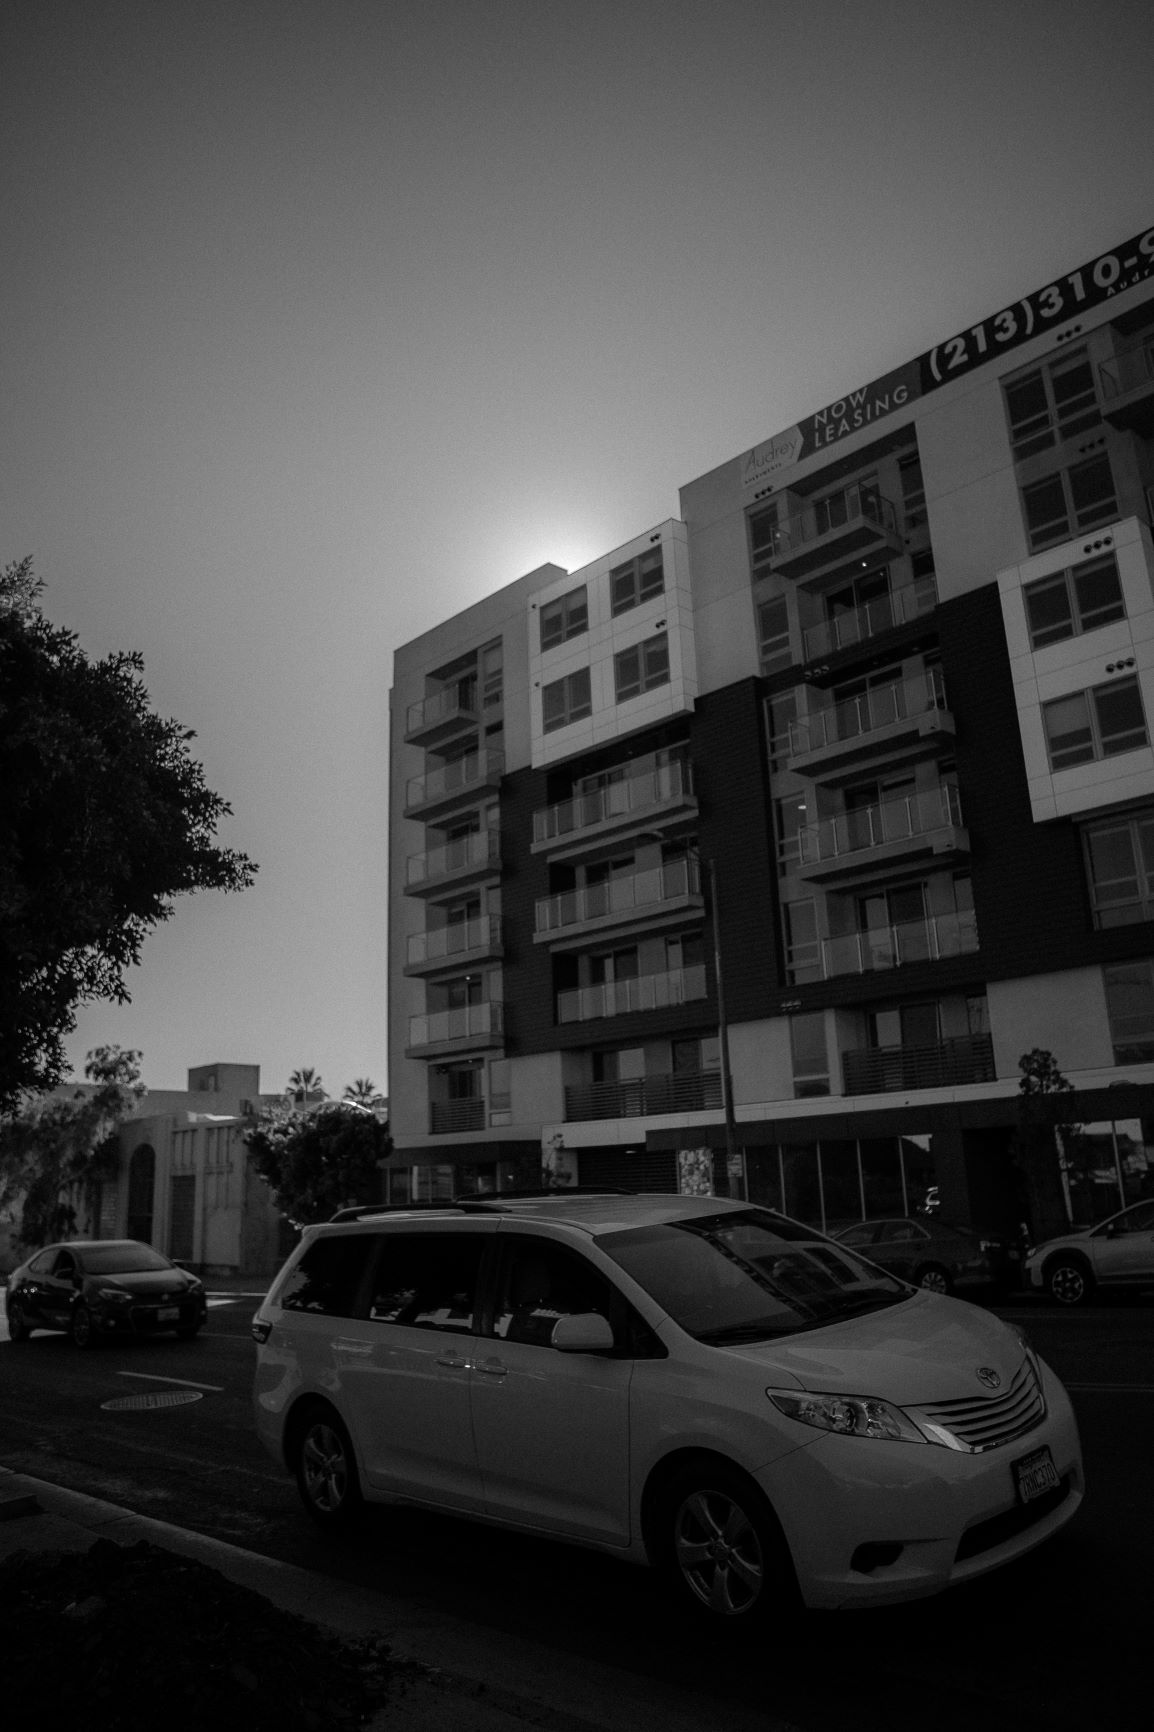 Image of apartment building in Koreatown